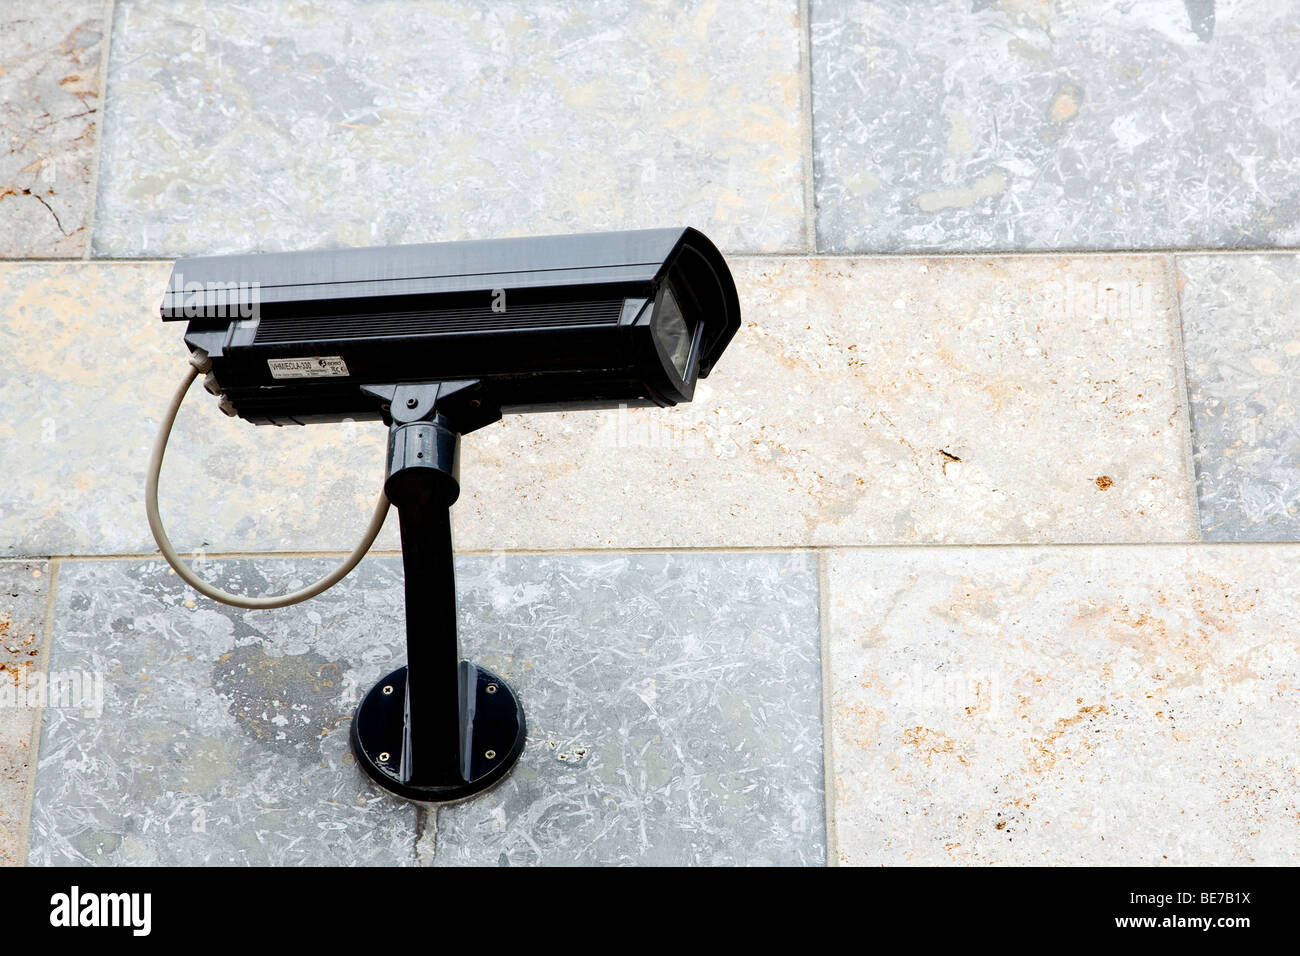 Surveillance camera on a house wall - Stock Image